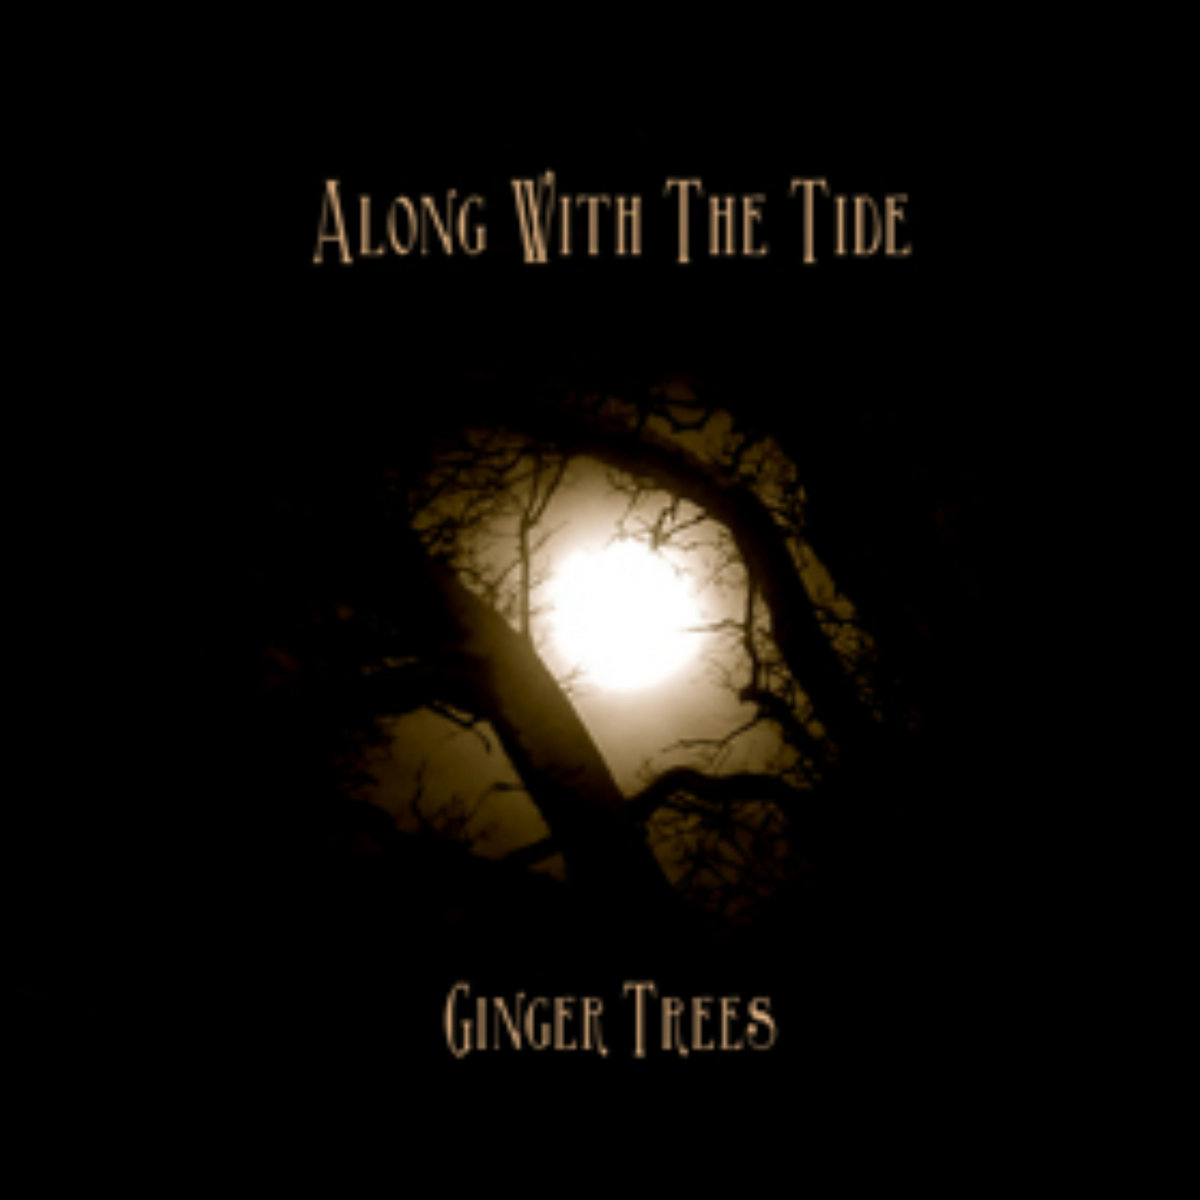 Along With The Tide   Ginger Trees   Transubstans Records